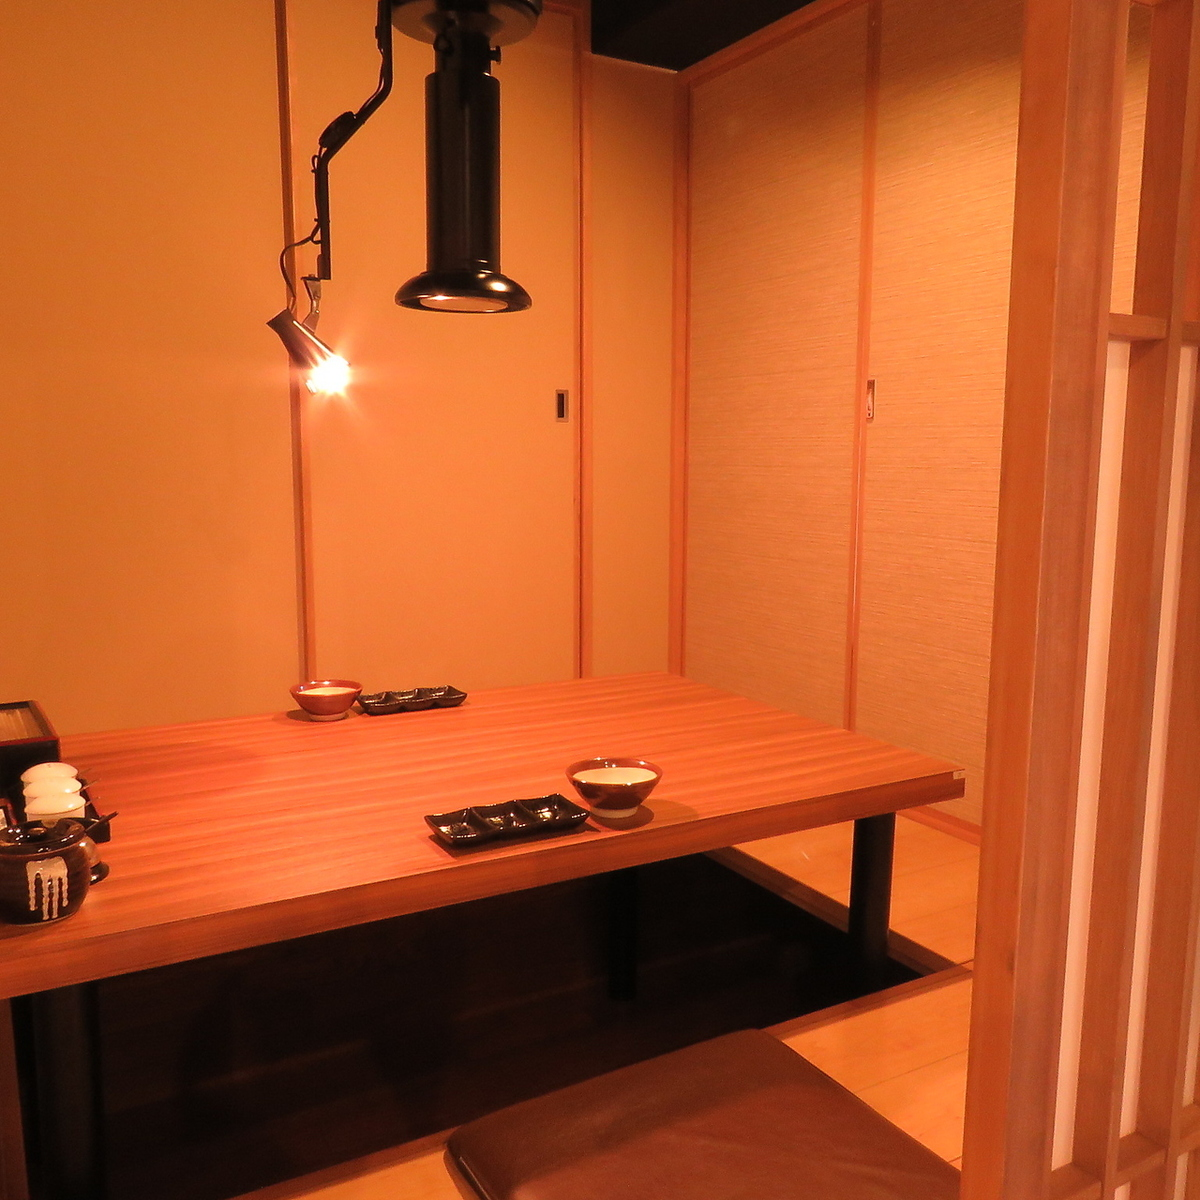 Private rooms can accommodate up to 20 people for 2 people flexibly.